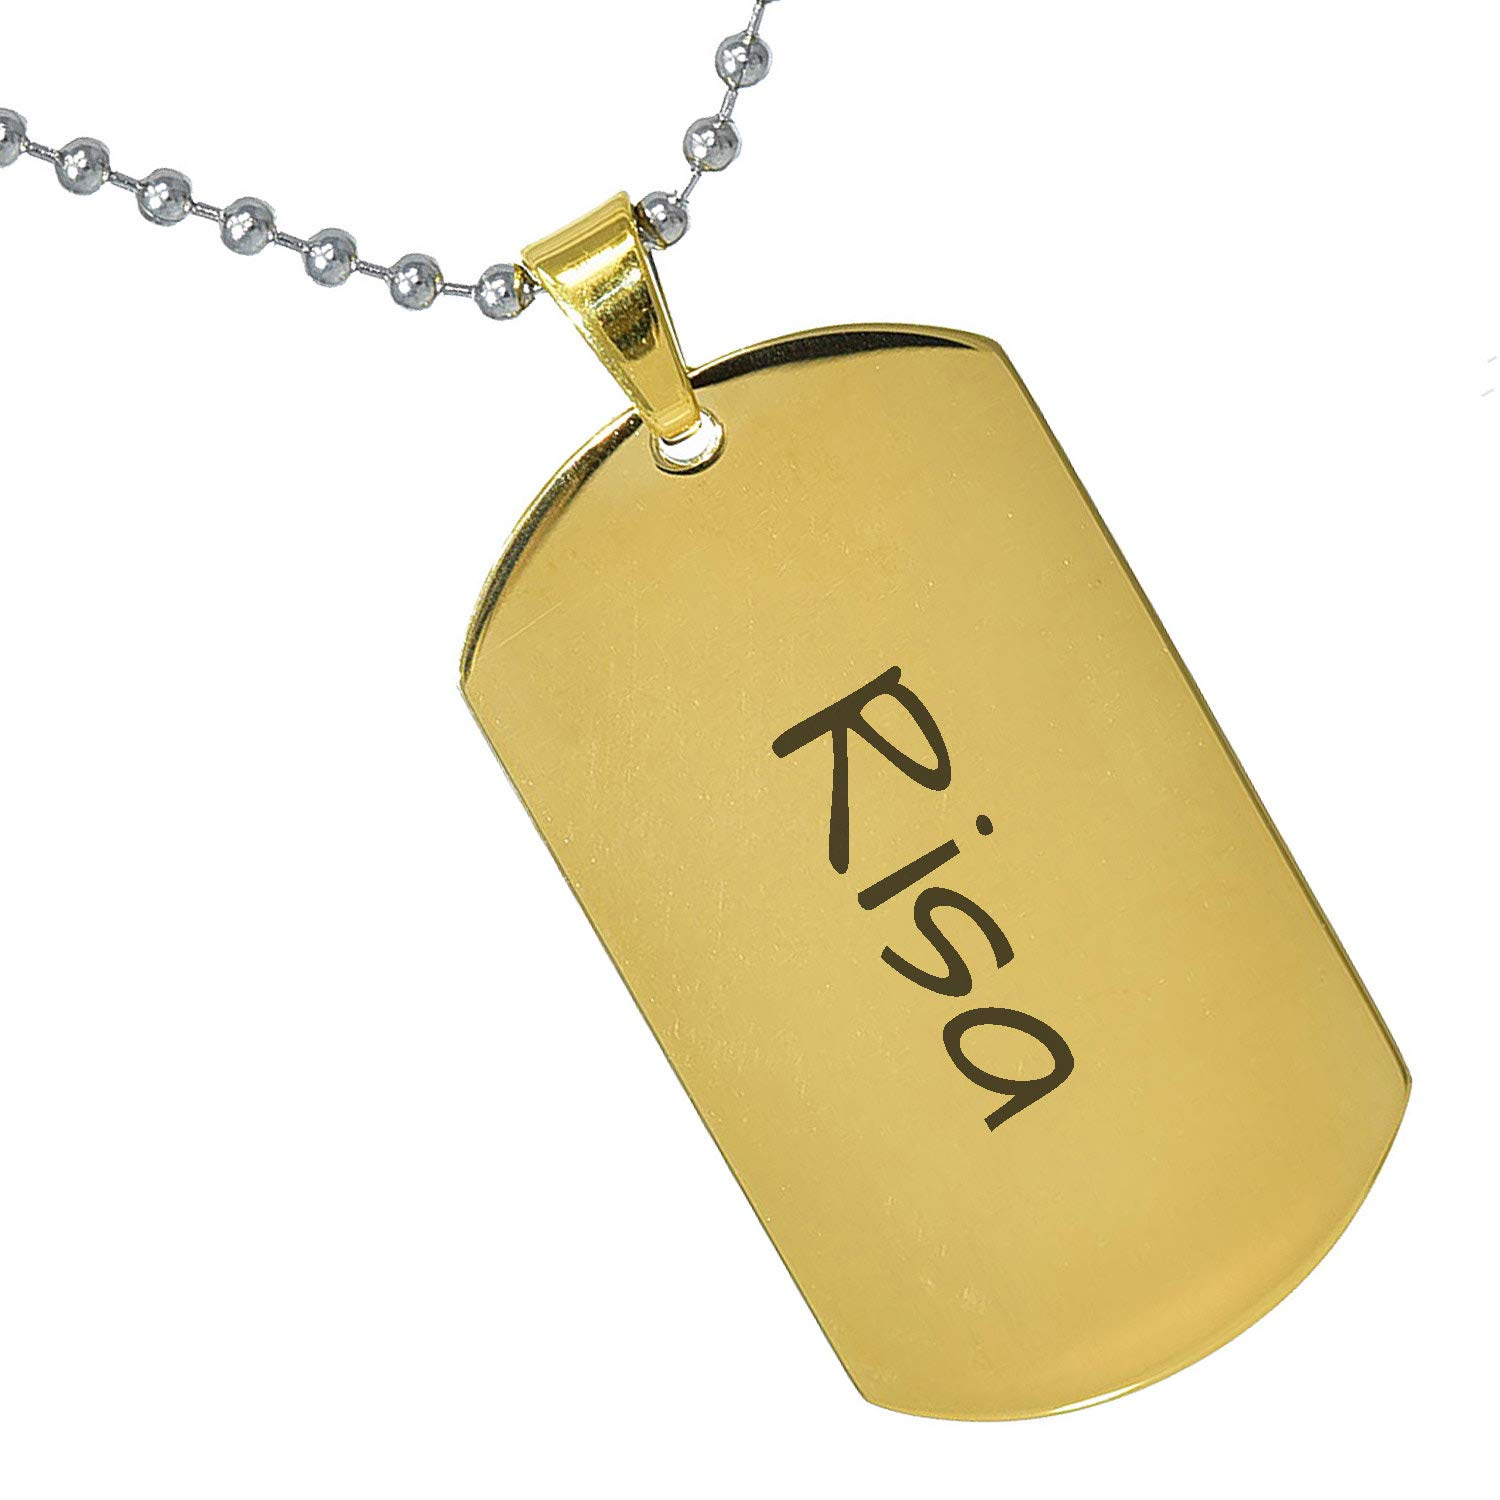 Stainless Steel Silver Gold Black Rose Gold Color Baby Name Risa Engraved Personalized Gifts For Son Daughter Boyfriend Girlfriend Initial Customizable Pendant Necklace Dog Tags 24 Ball Chain